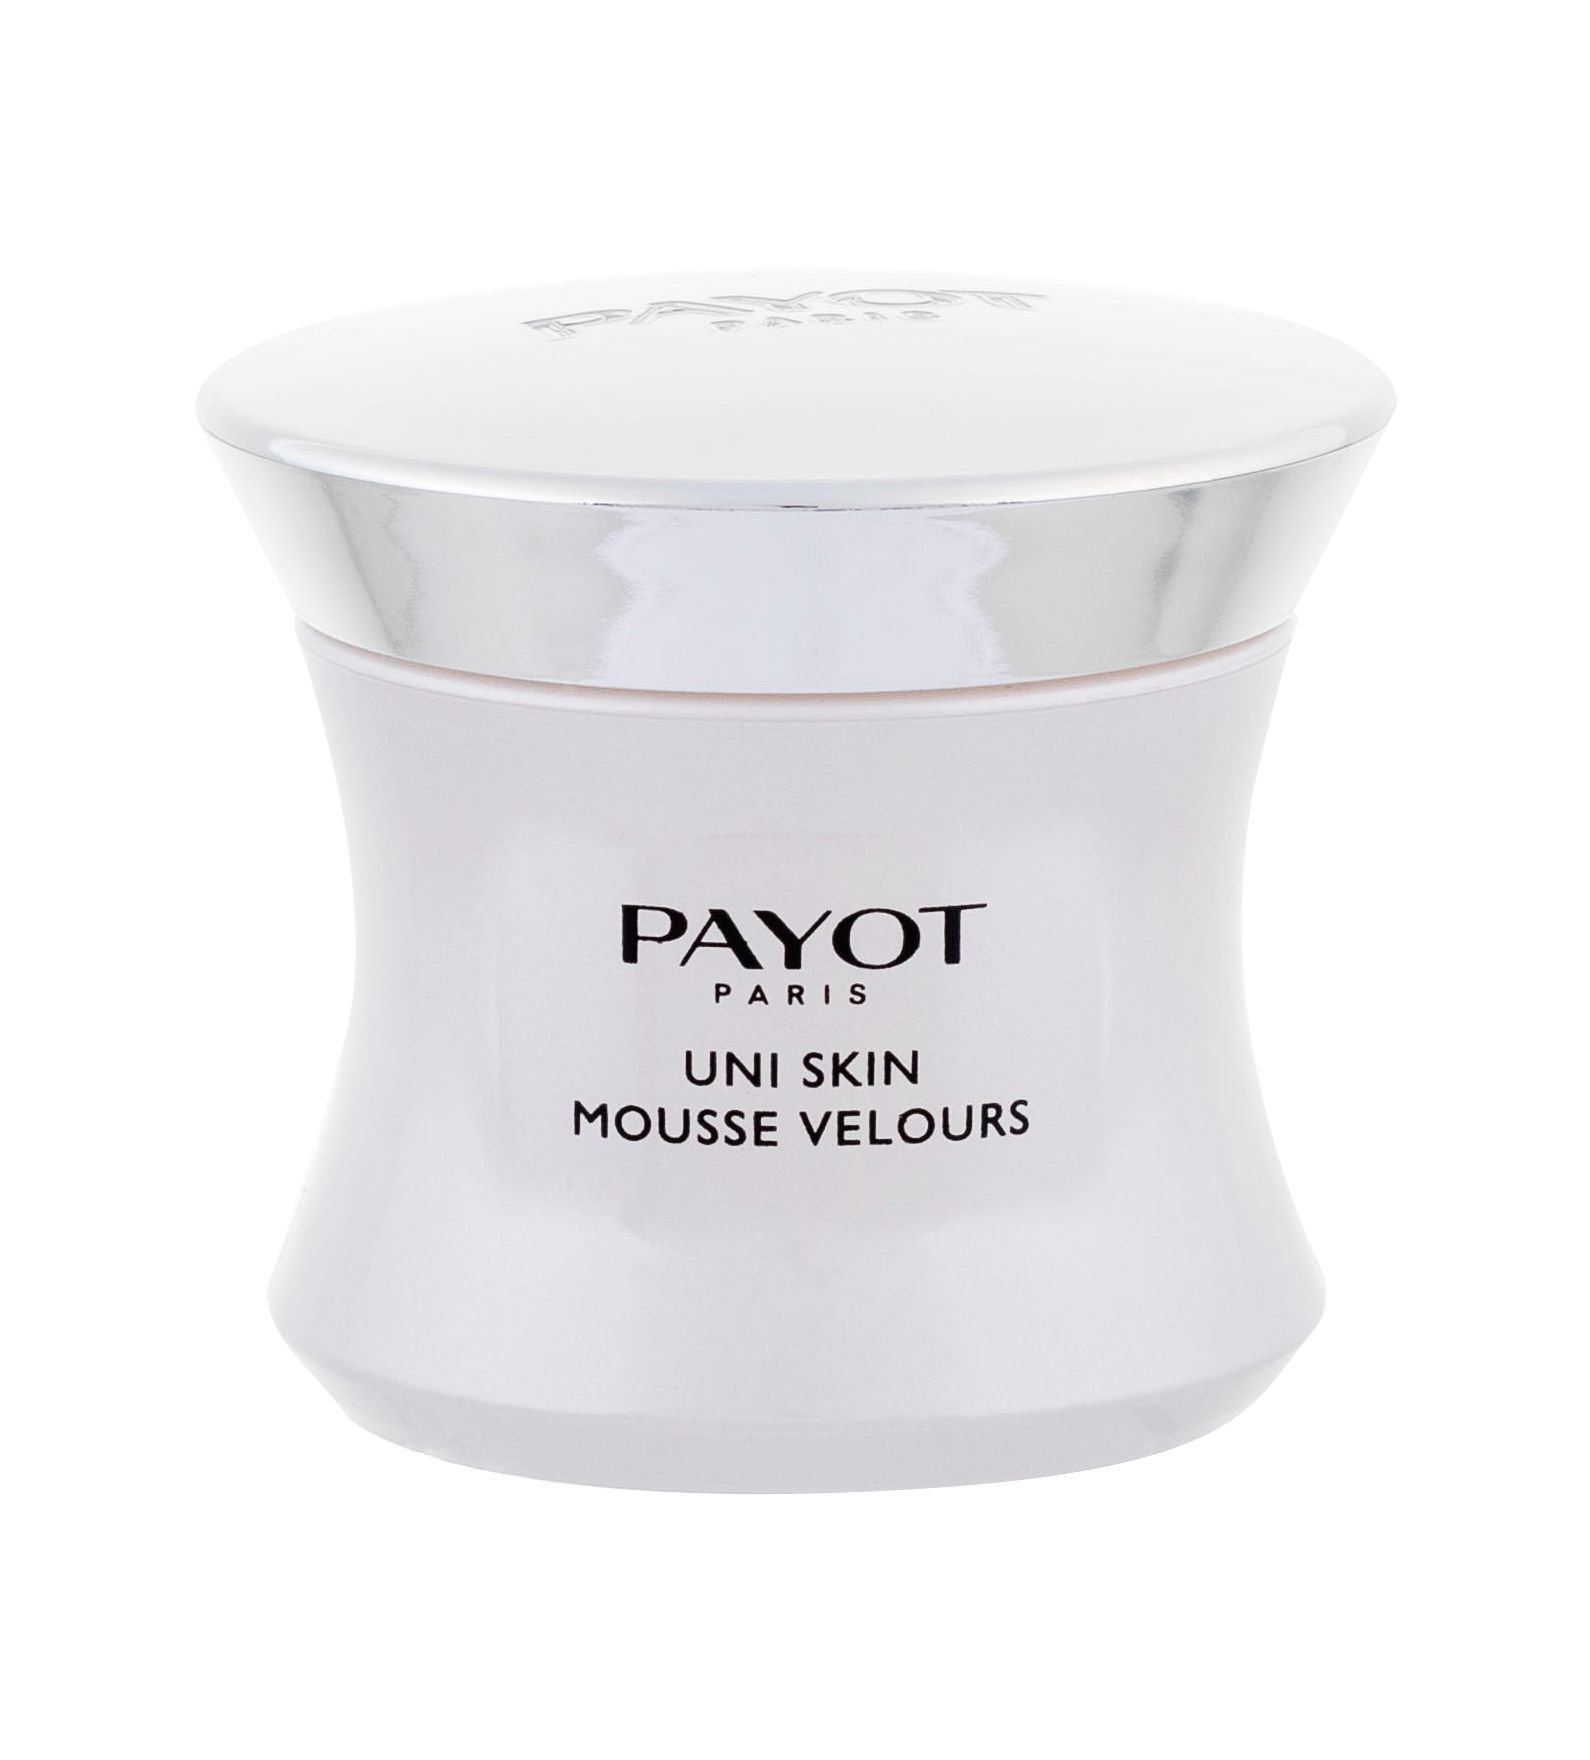 PAYOT Uni Skin Day Cream 50ml